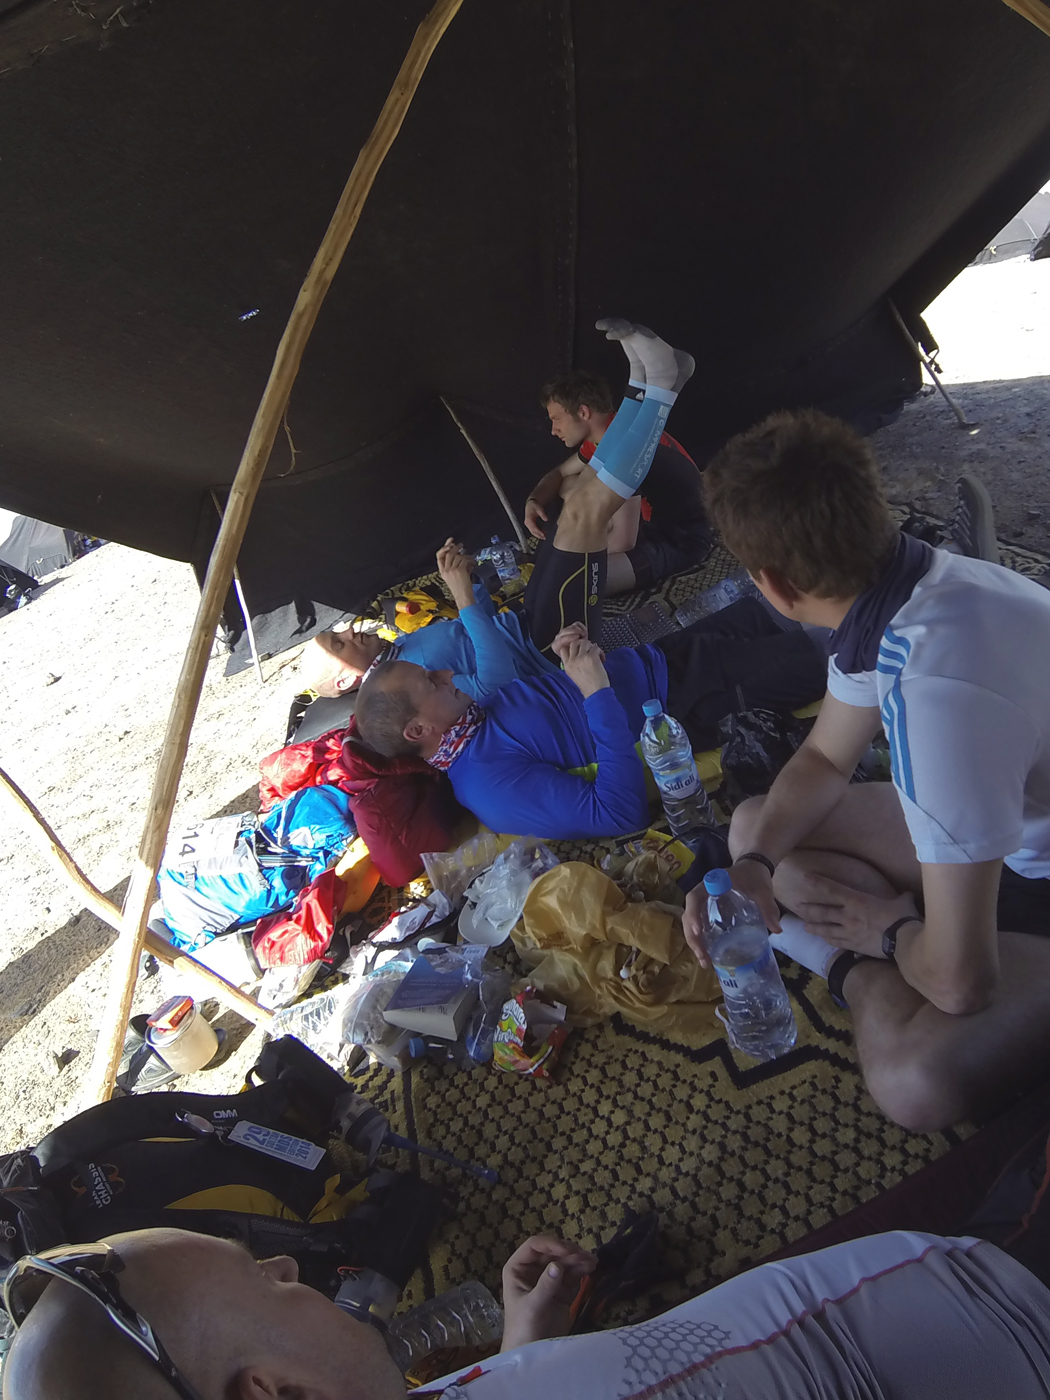 Lazing in the tent after kit checks